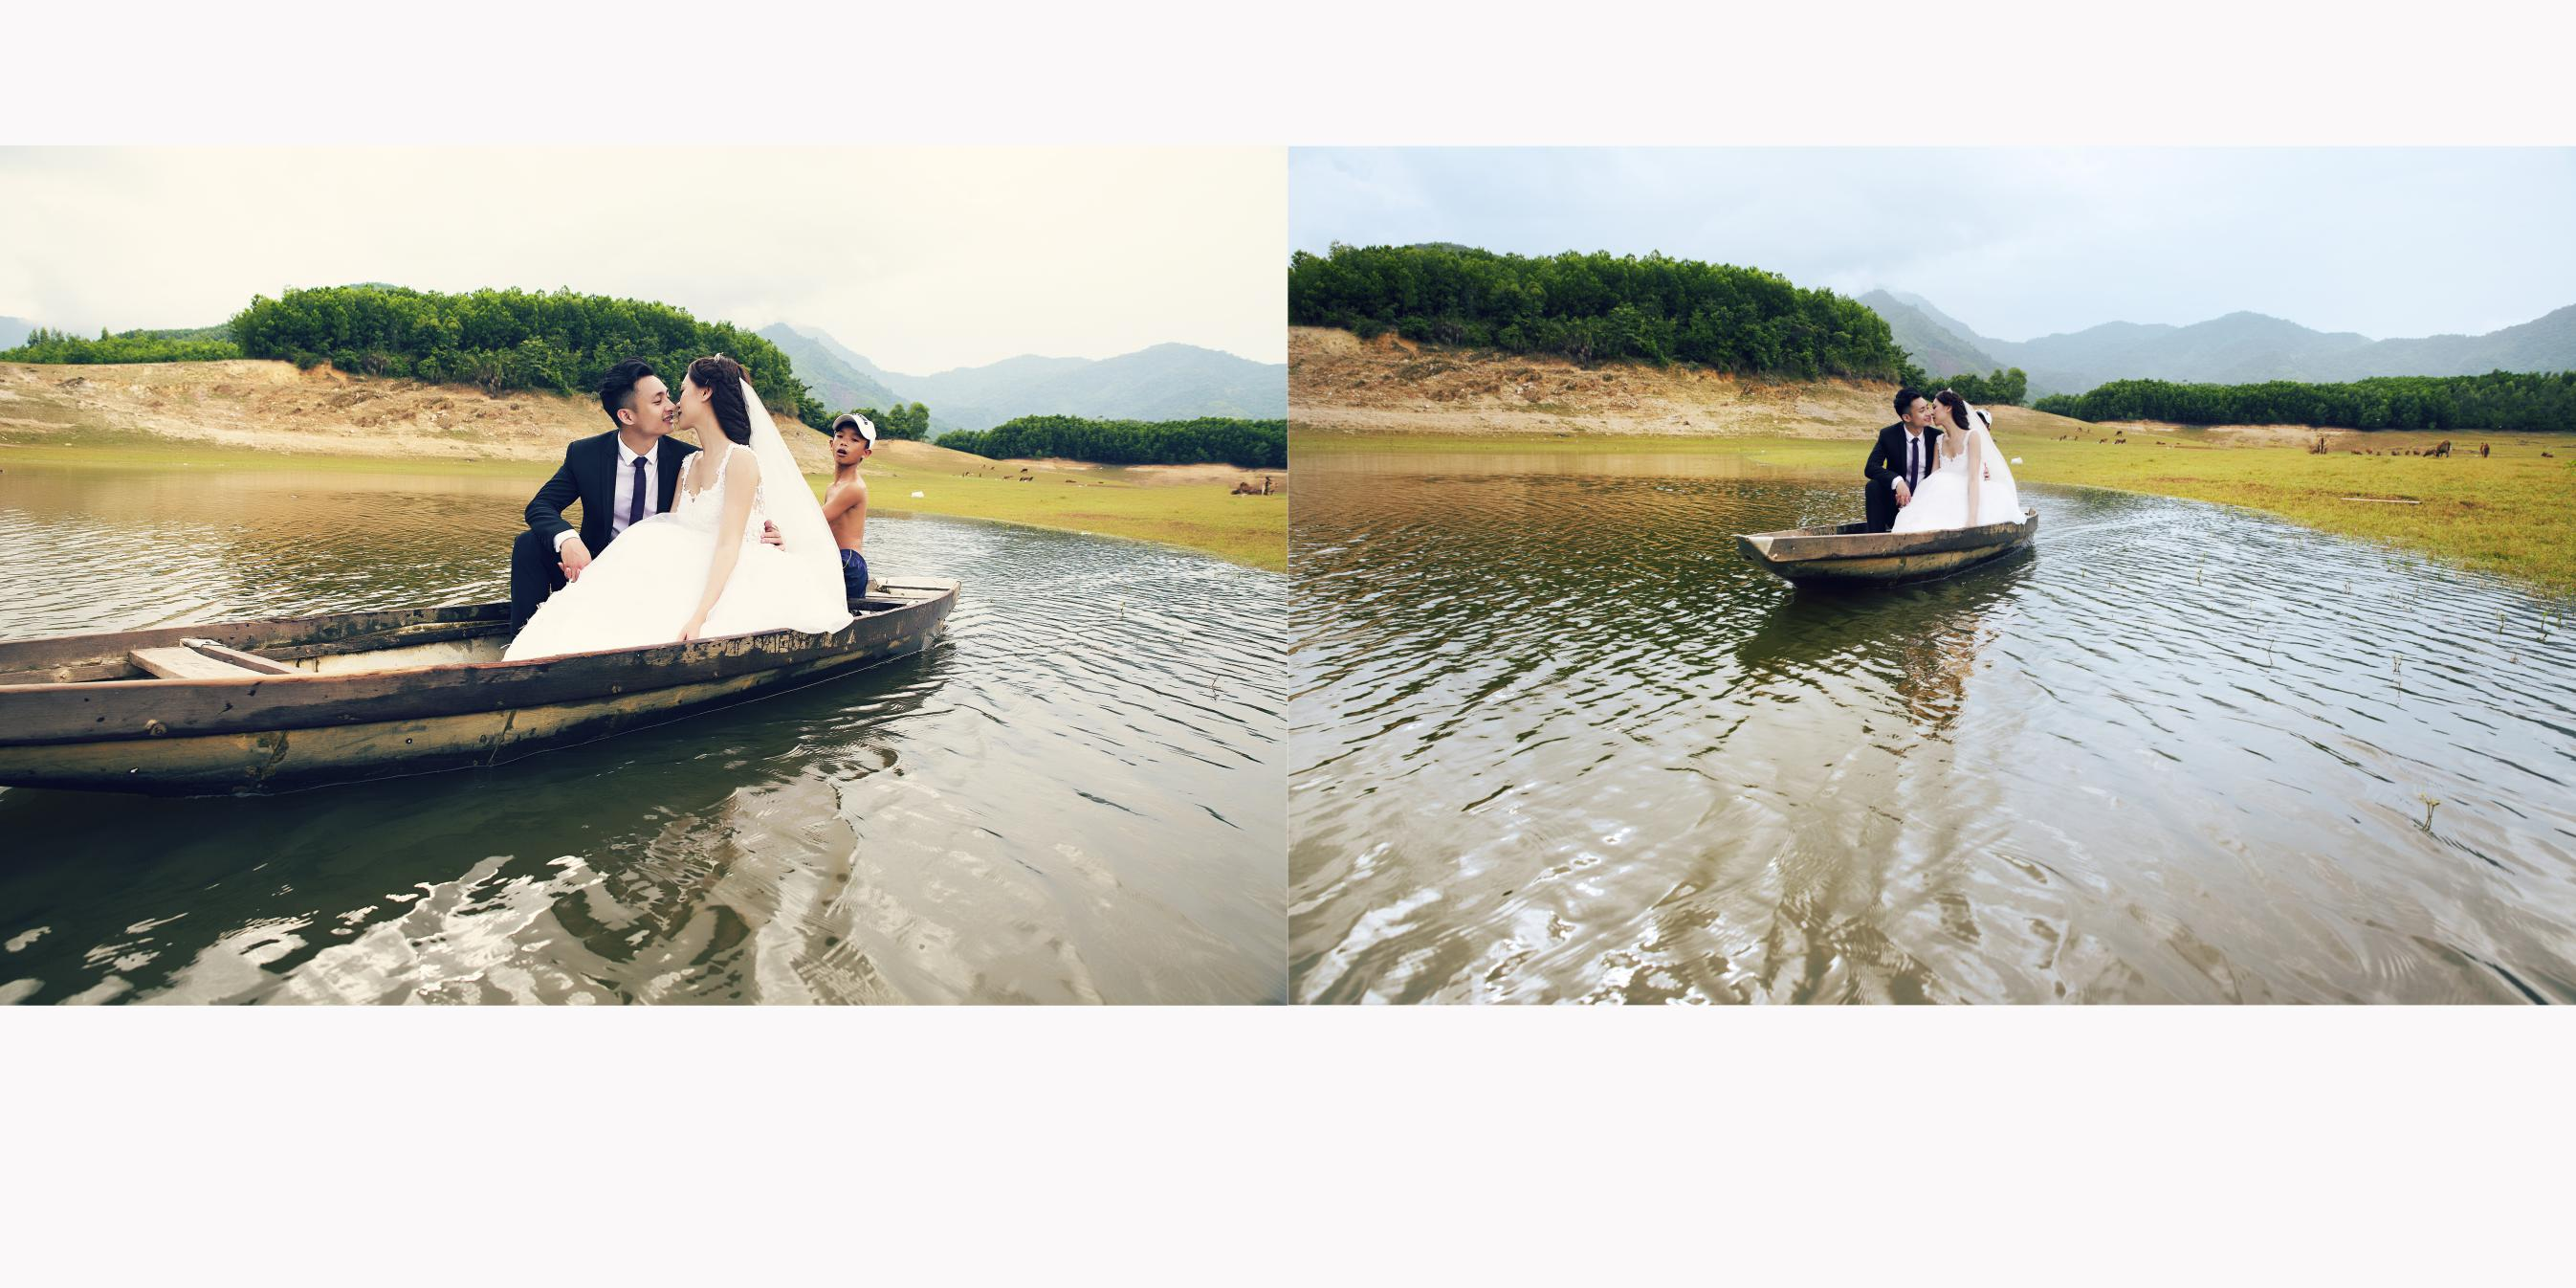 [Pre-Wedding] To Show You My Love